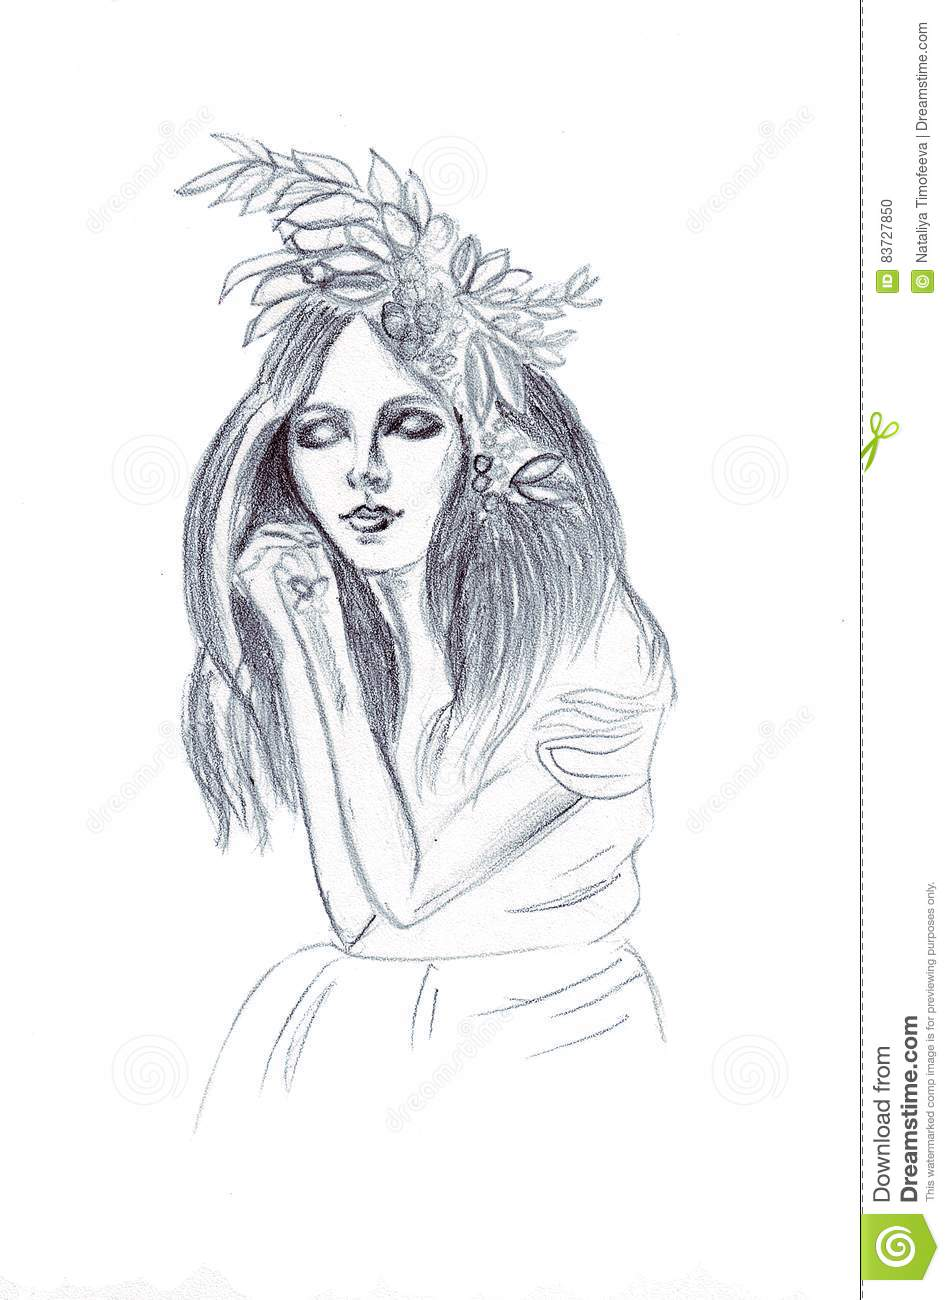 Illustration Of A Girl In A Pencil Drawing With Hair And